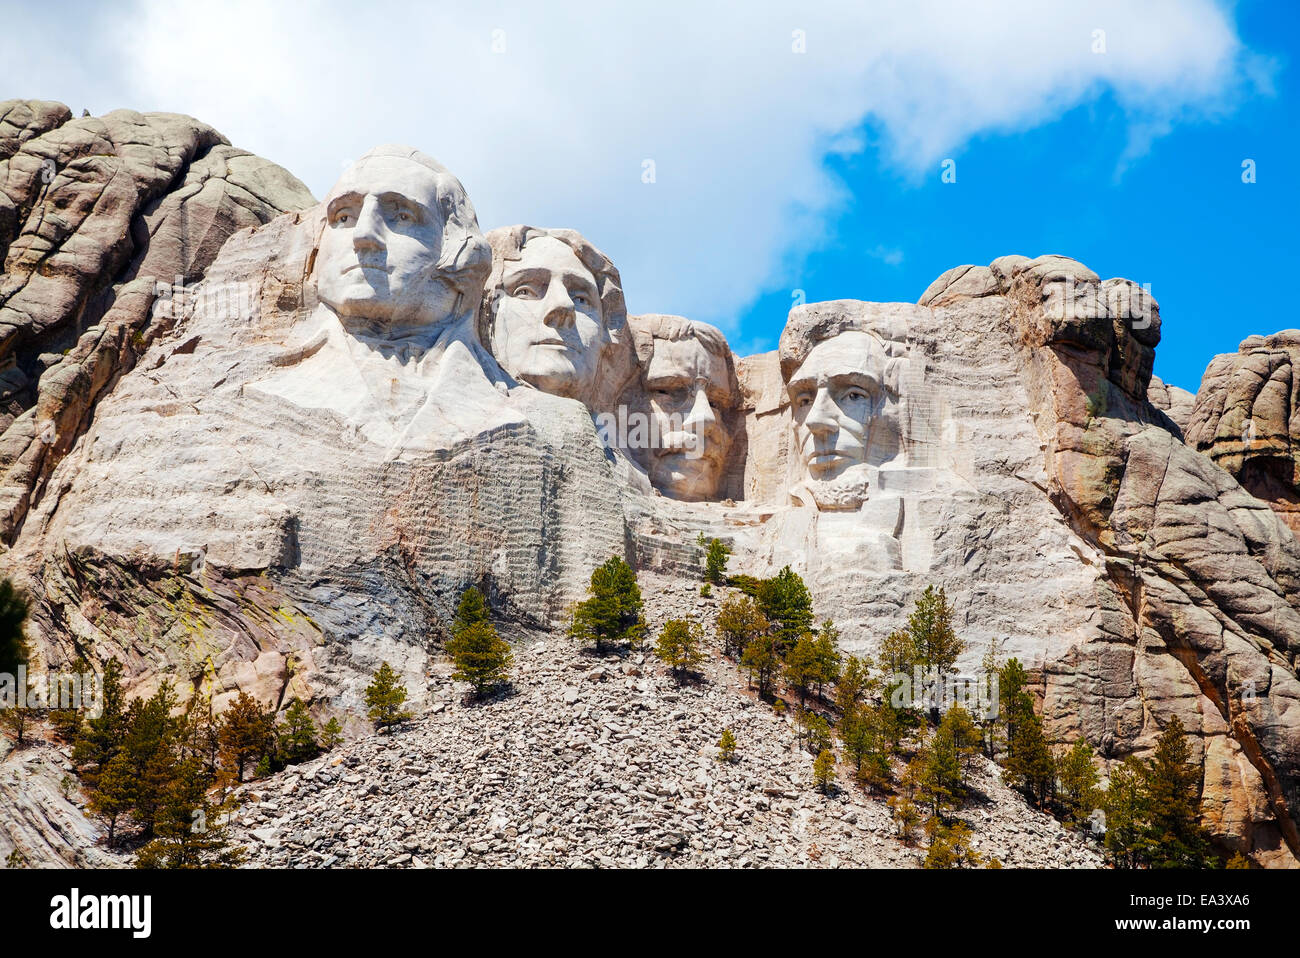 Mount Rushmore monument in South Dakota Stock Photo